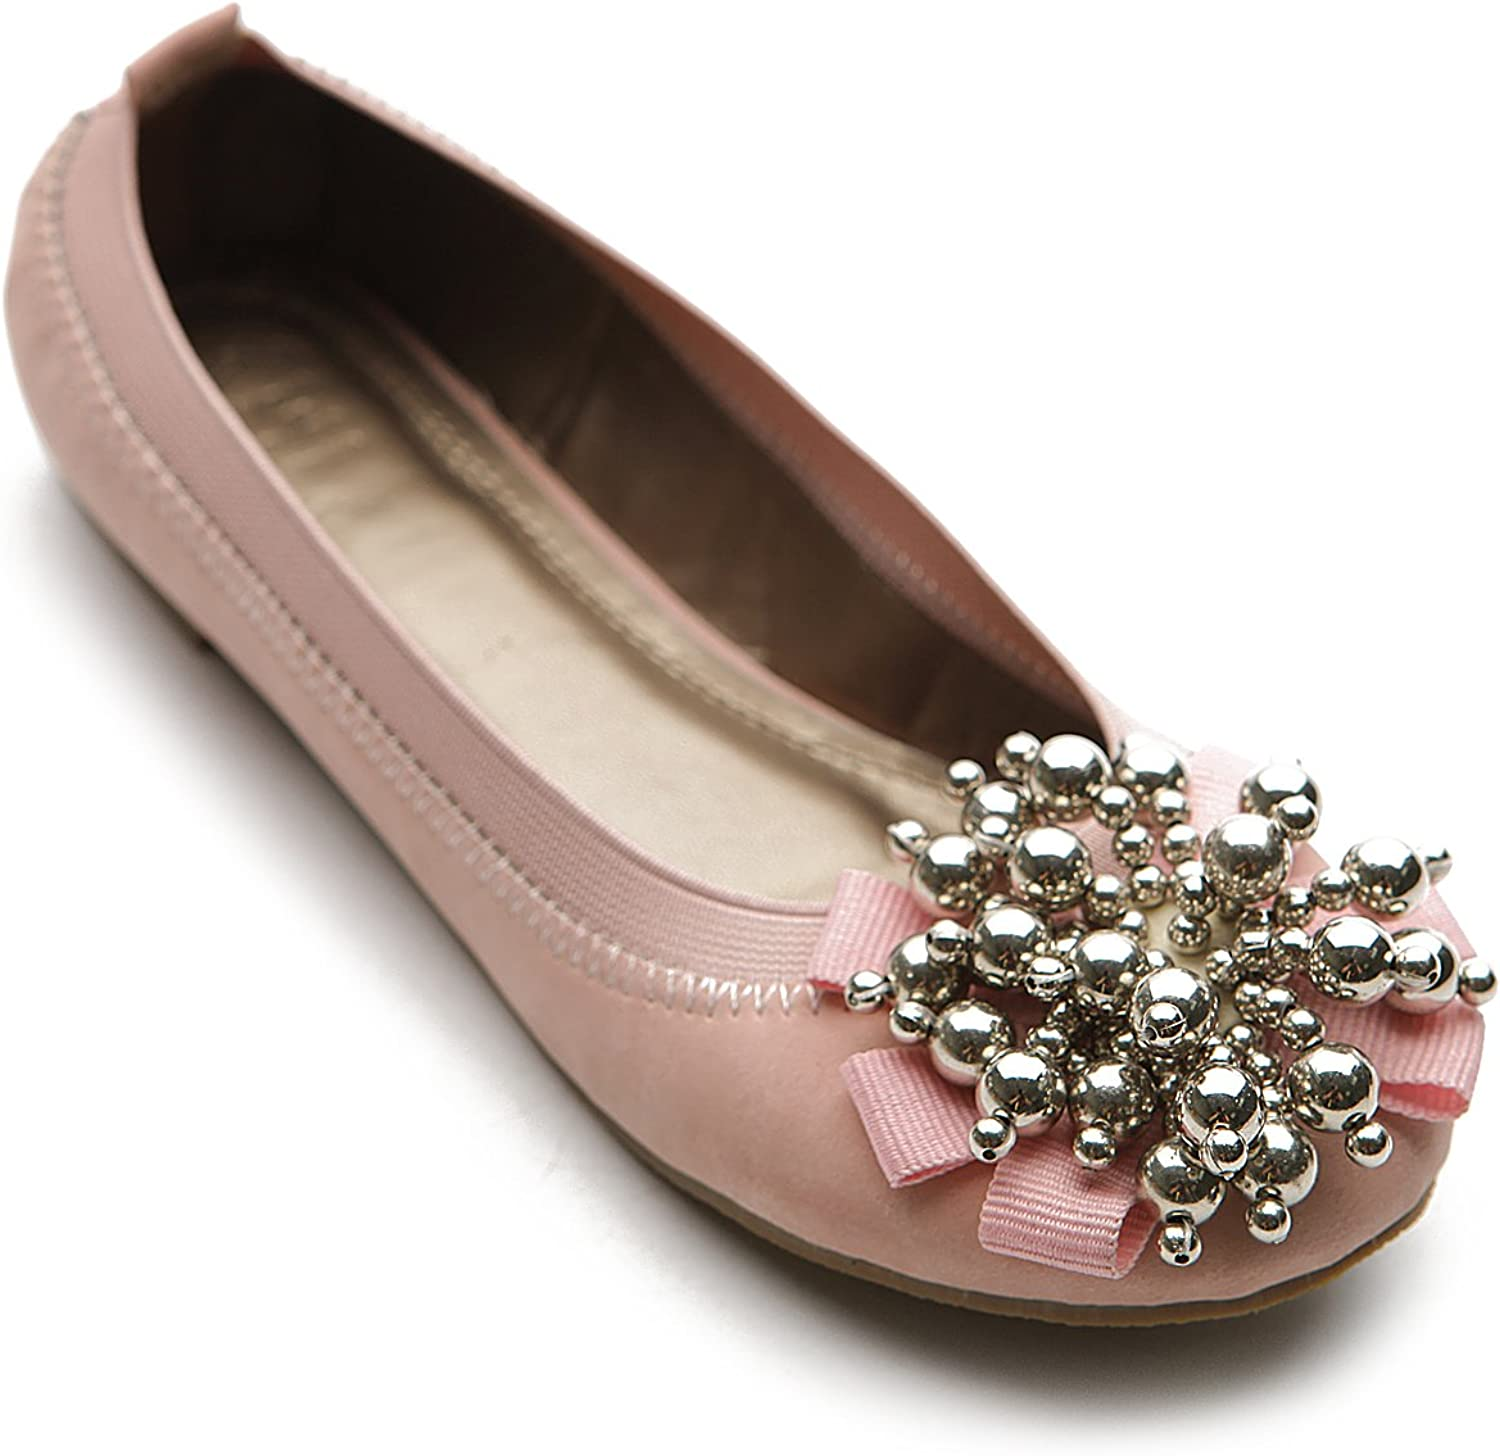 Ollio Women's Ballet shoes Soft Cute Silver Bead Accent Flats M1913 (10 B(M) US, Pink)